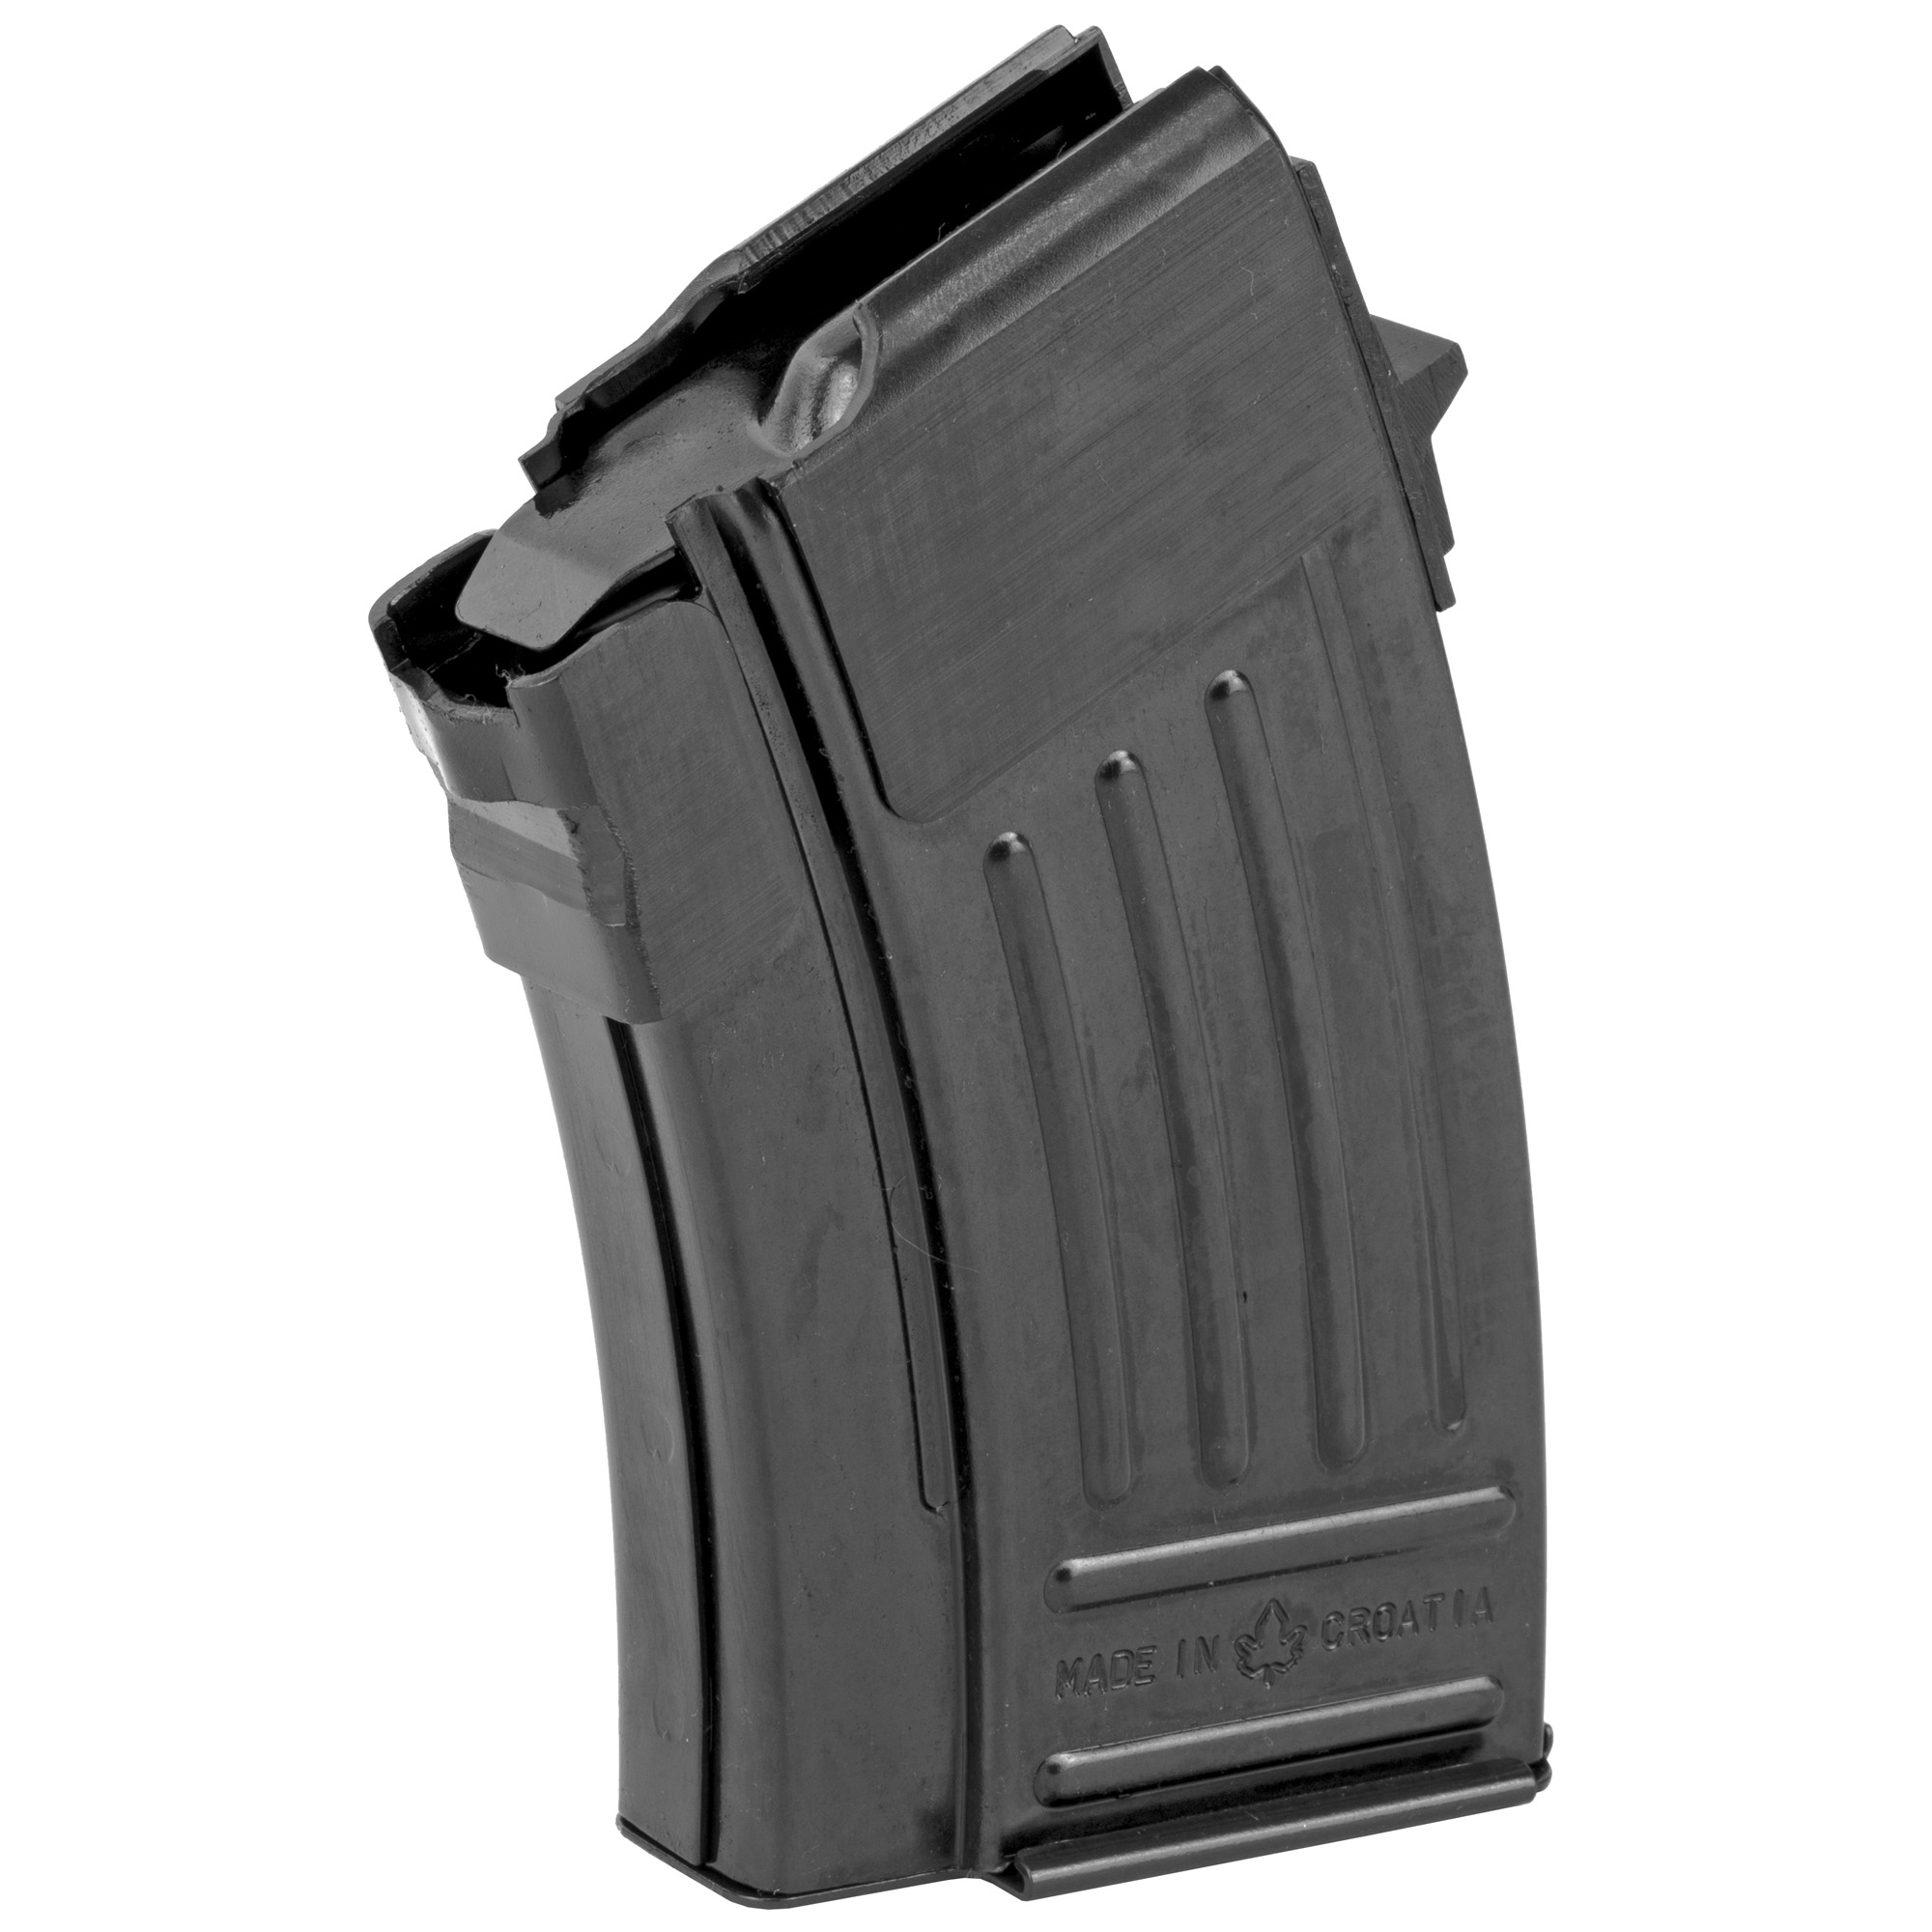 This 10 round steel magazine will fit AK-47 variants and features a high quality spring and follower designed to ensure reliable feeding and operation.